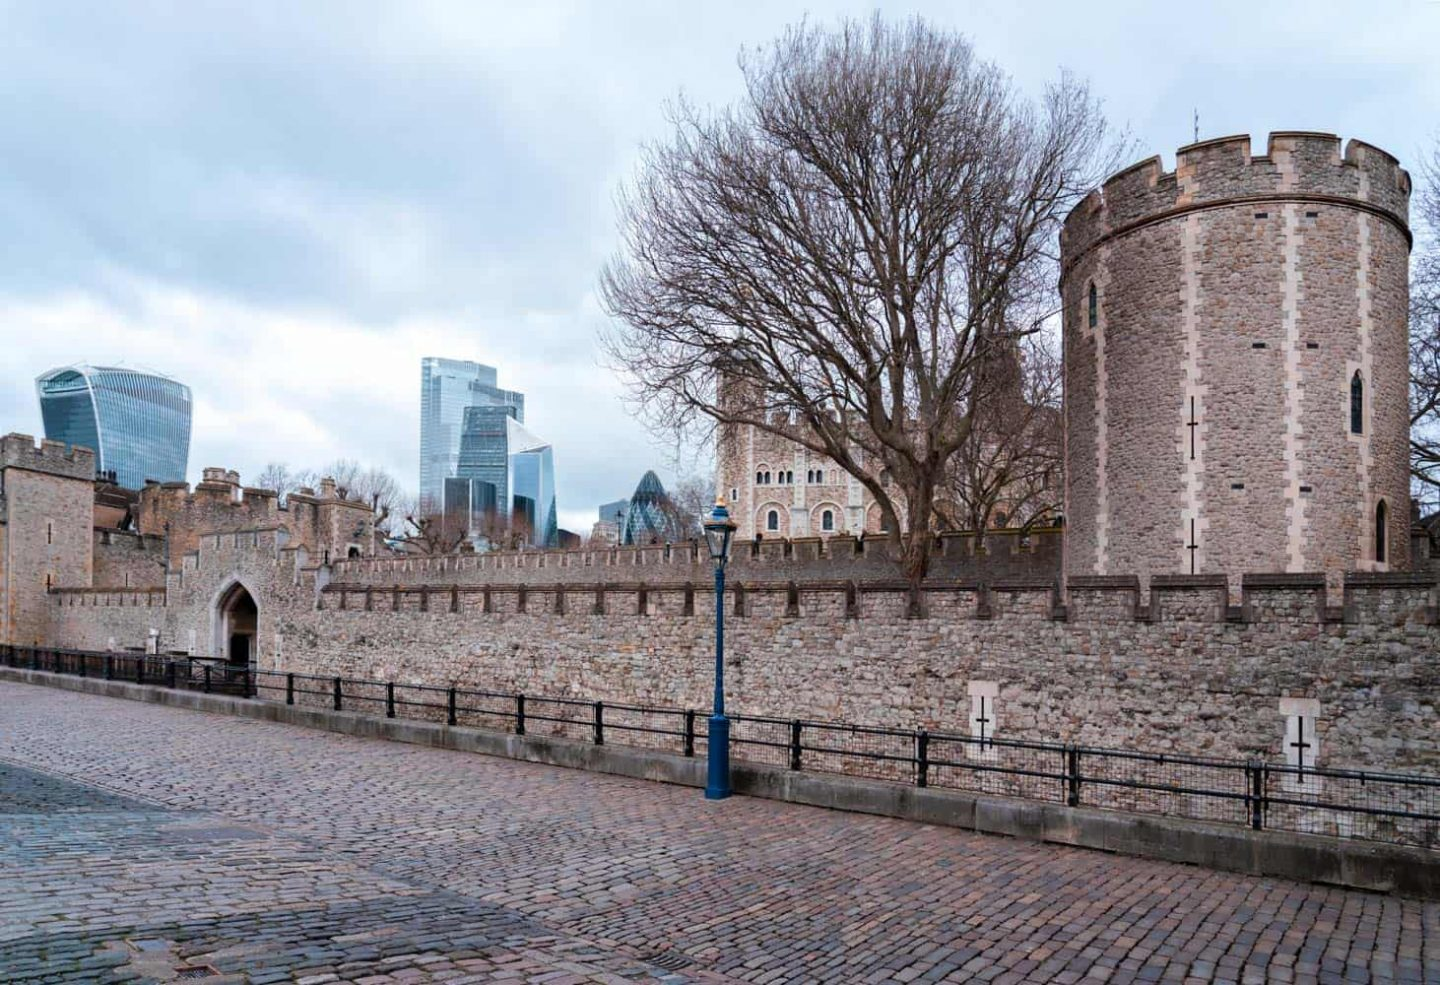 The southern side of the Tower of London as seen from the bank of the River Thames.